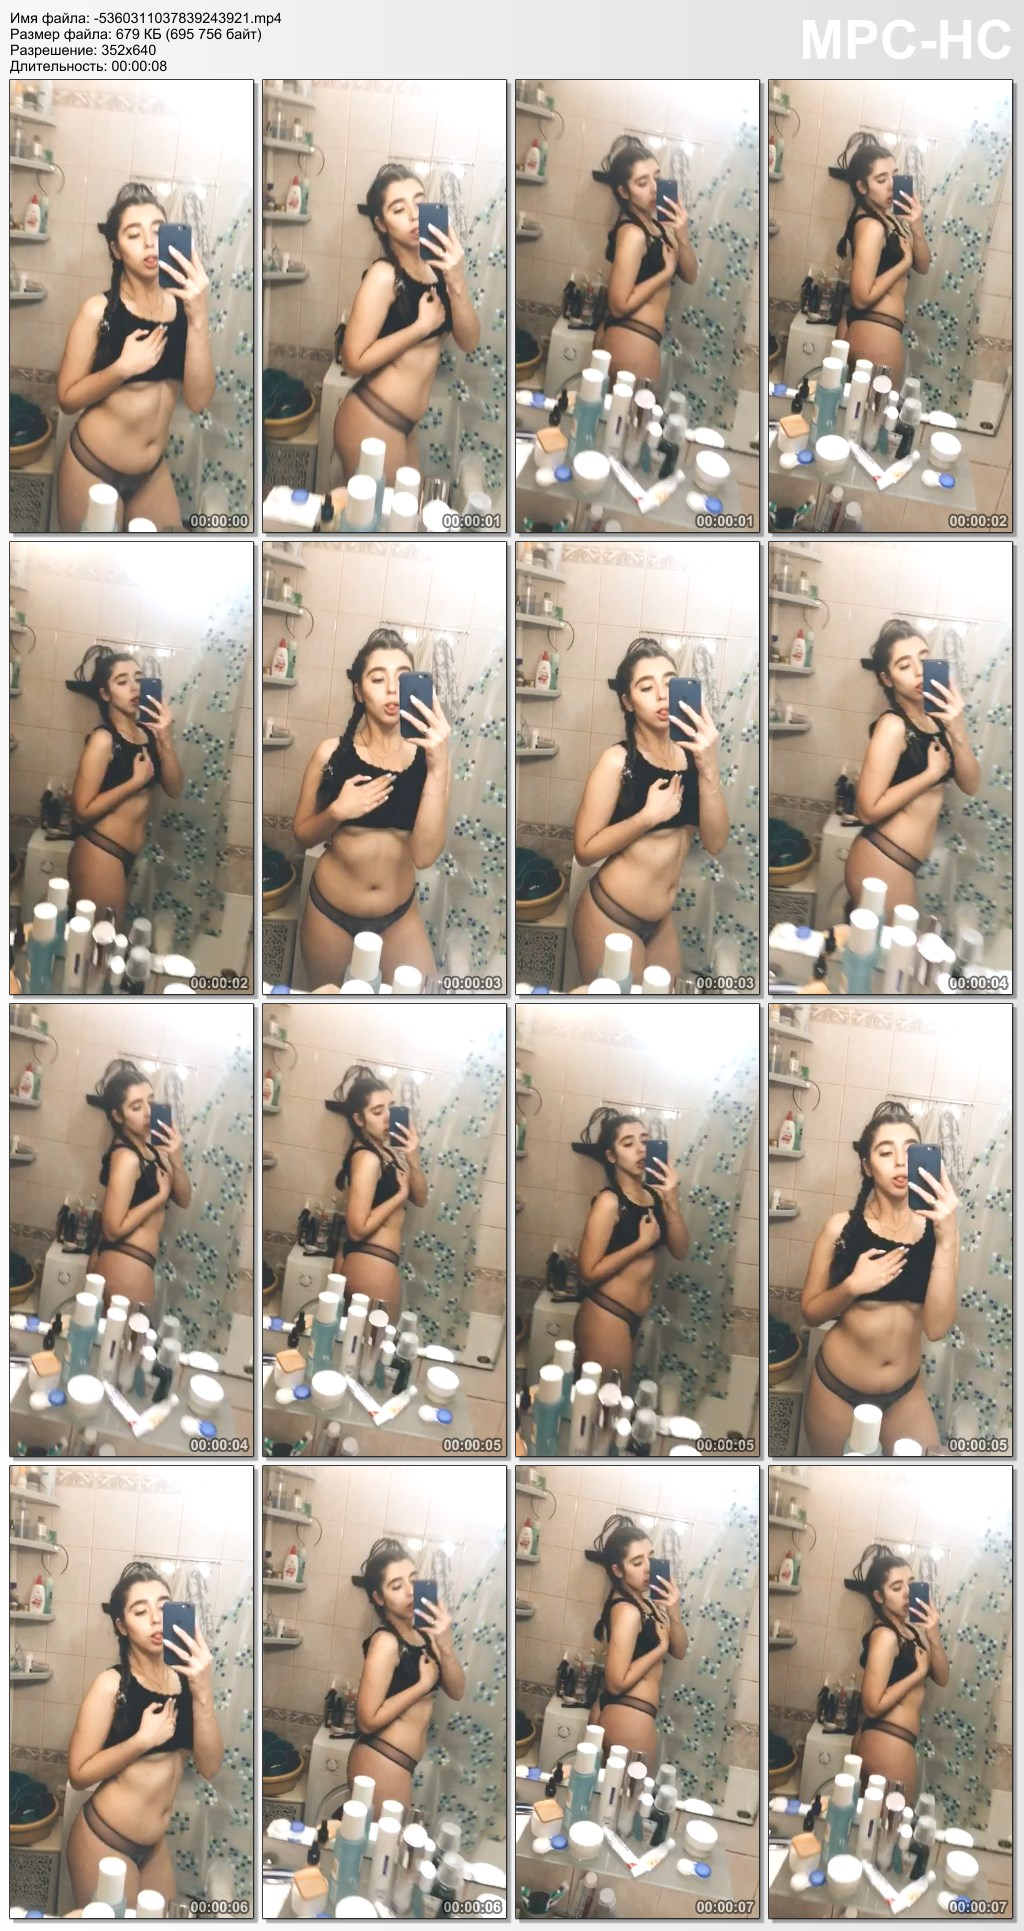 Beautiful young girl from Armenia takes off your intimate video on the phone. -5360310